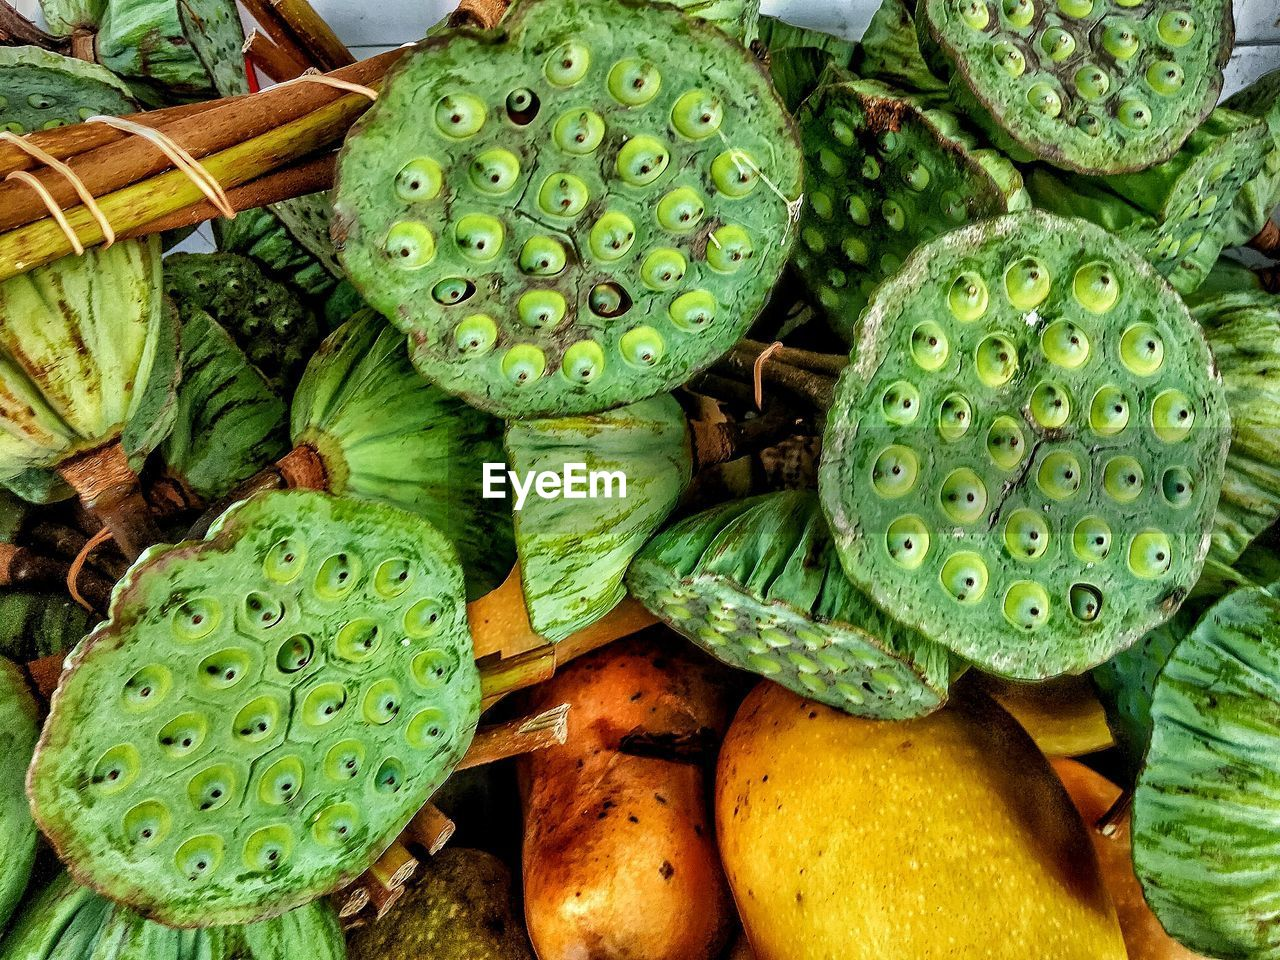 green color, growth, freshness, no people, food and drink, cactus, day, fruit, food, healthy eating, nature, close-up, outdoors, leaf, prickly pear cactus, beauty in nature